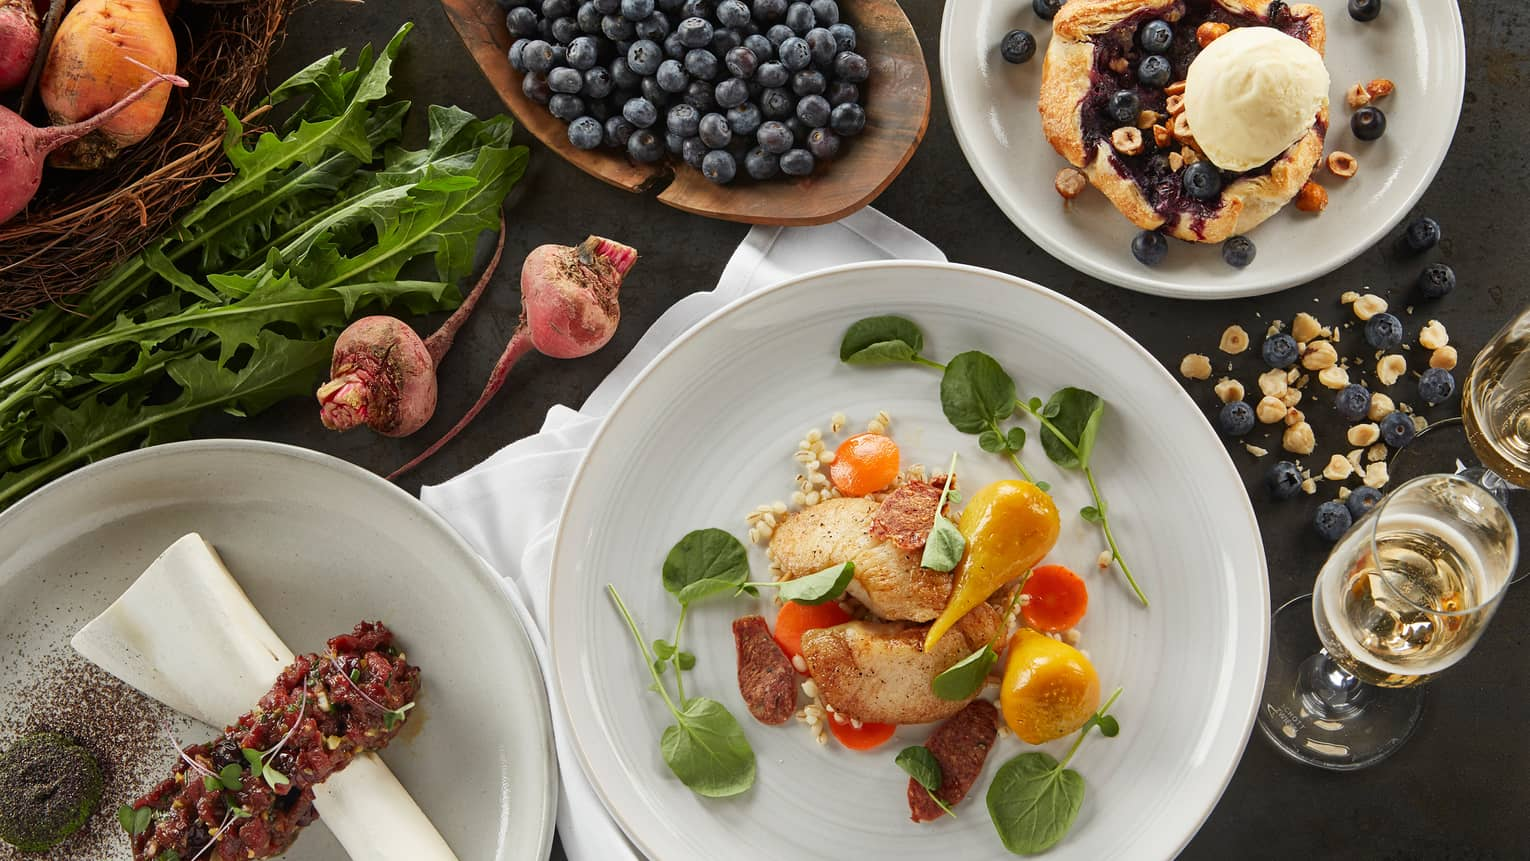 Aerial view of dinner plate with roast chicken and vegetables, blueberry crumble with cream, fresh berries